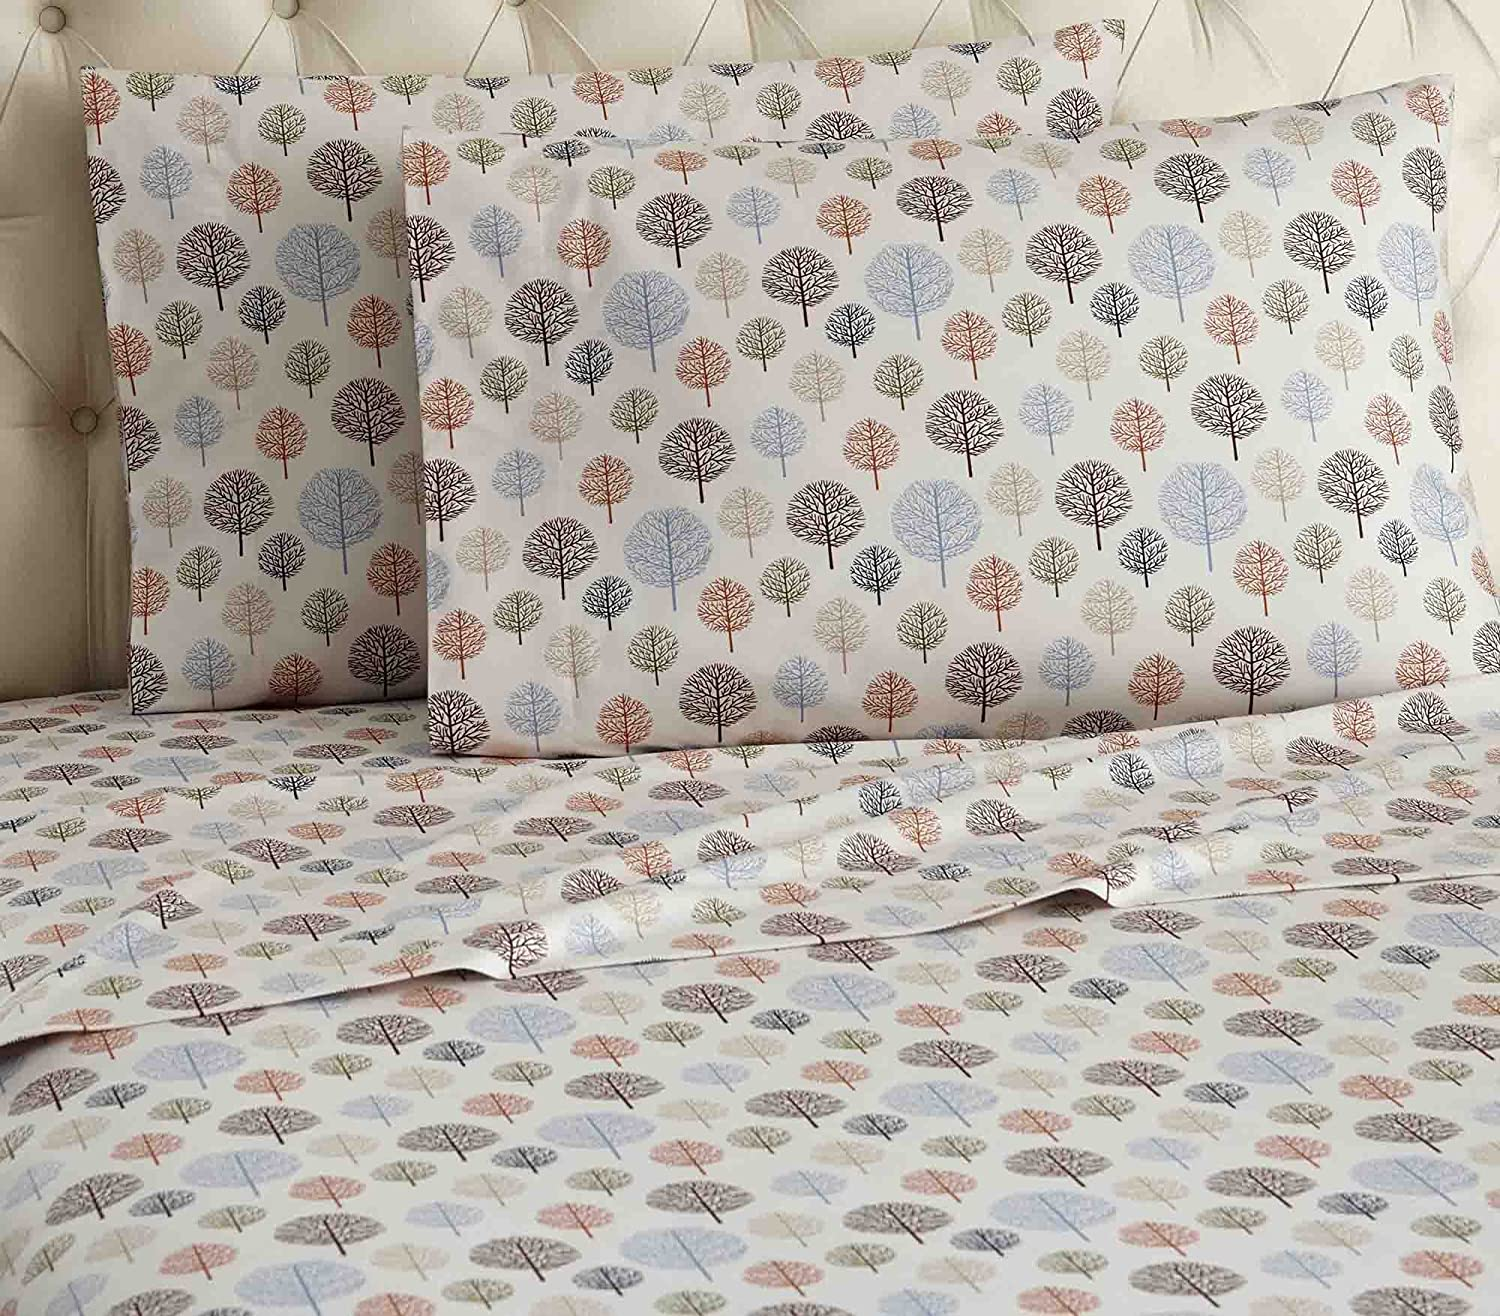 Thermee Micro Flannel Shavel Home Products Sheet Set, Happy Forest, Twin